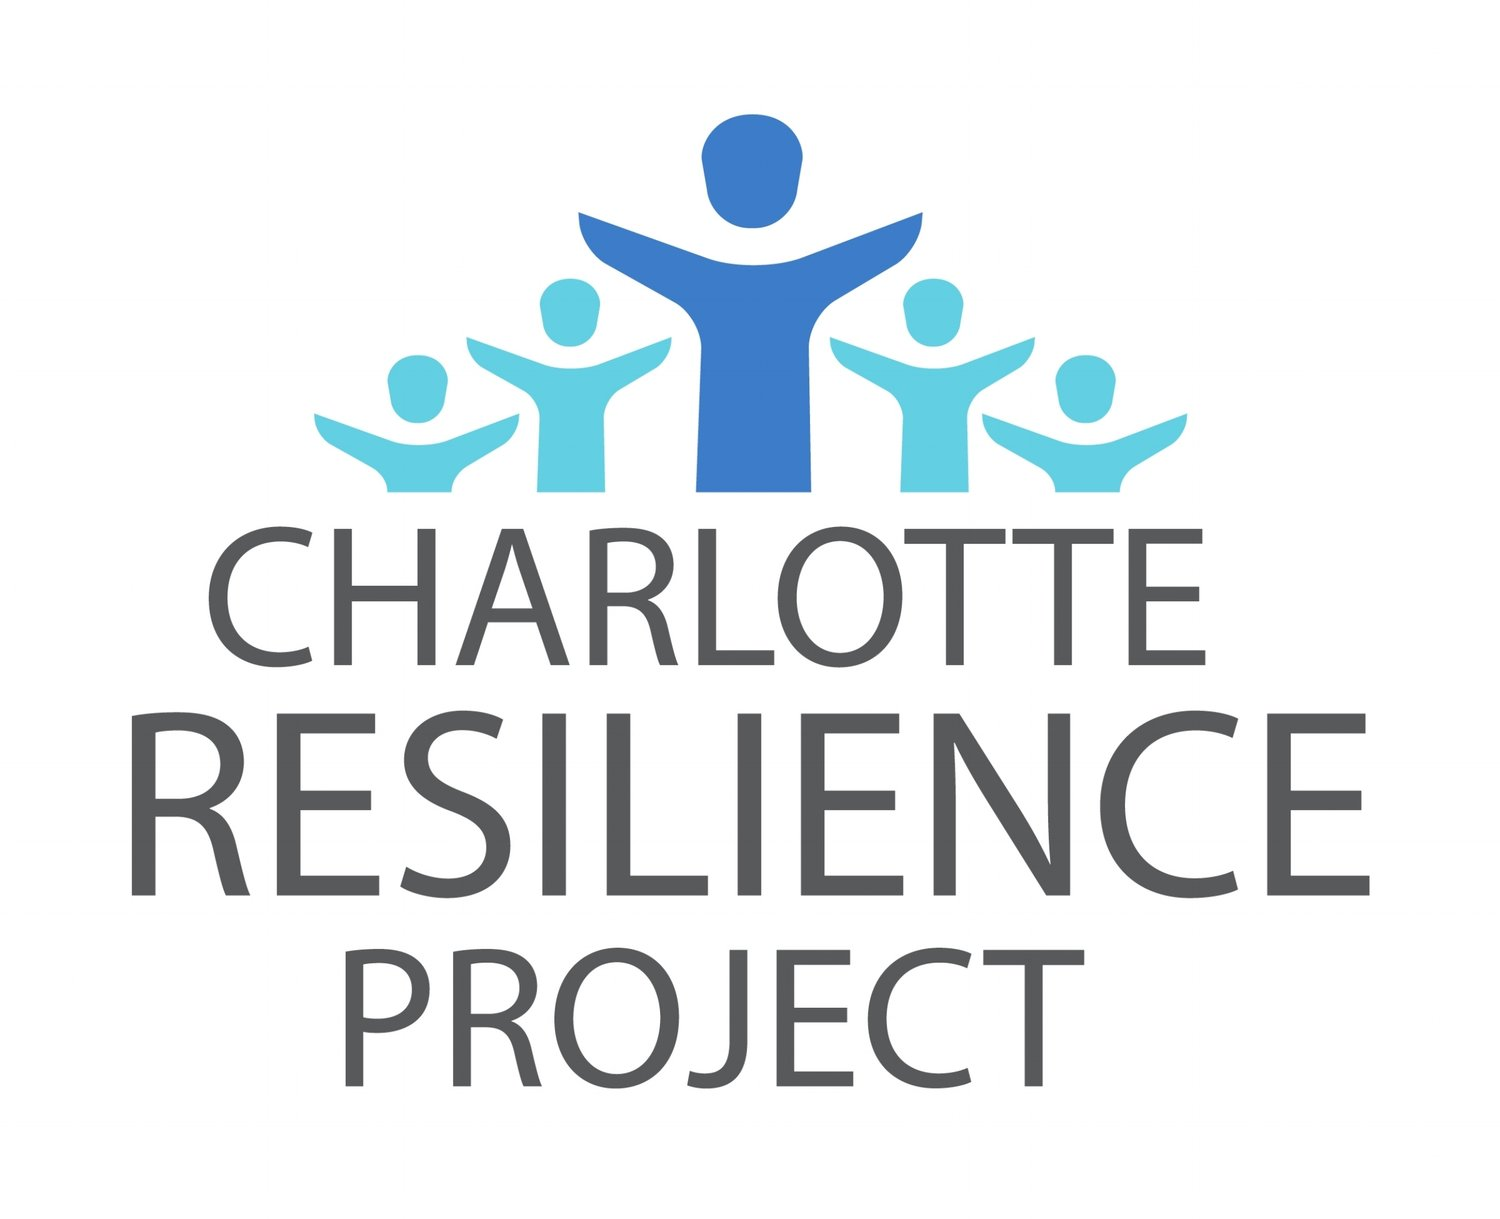 Charlotte Resilience Project